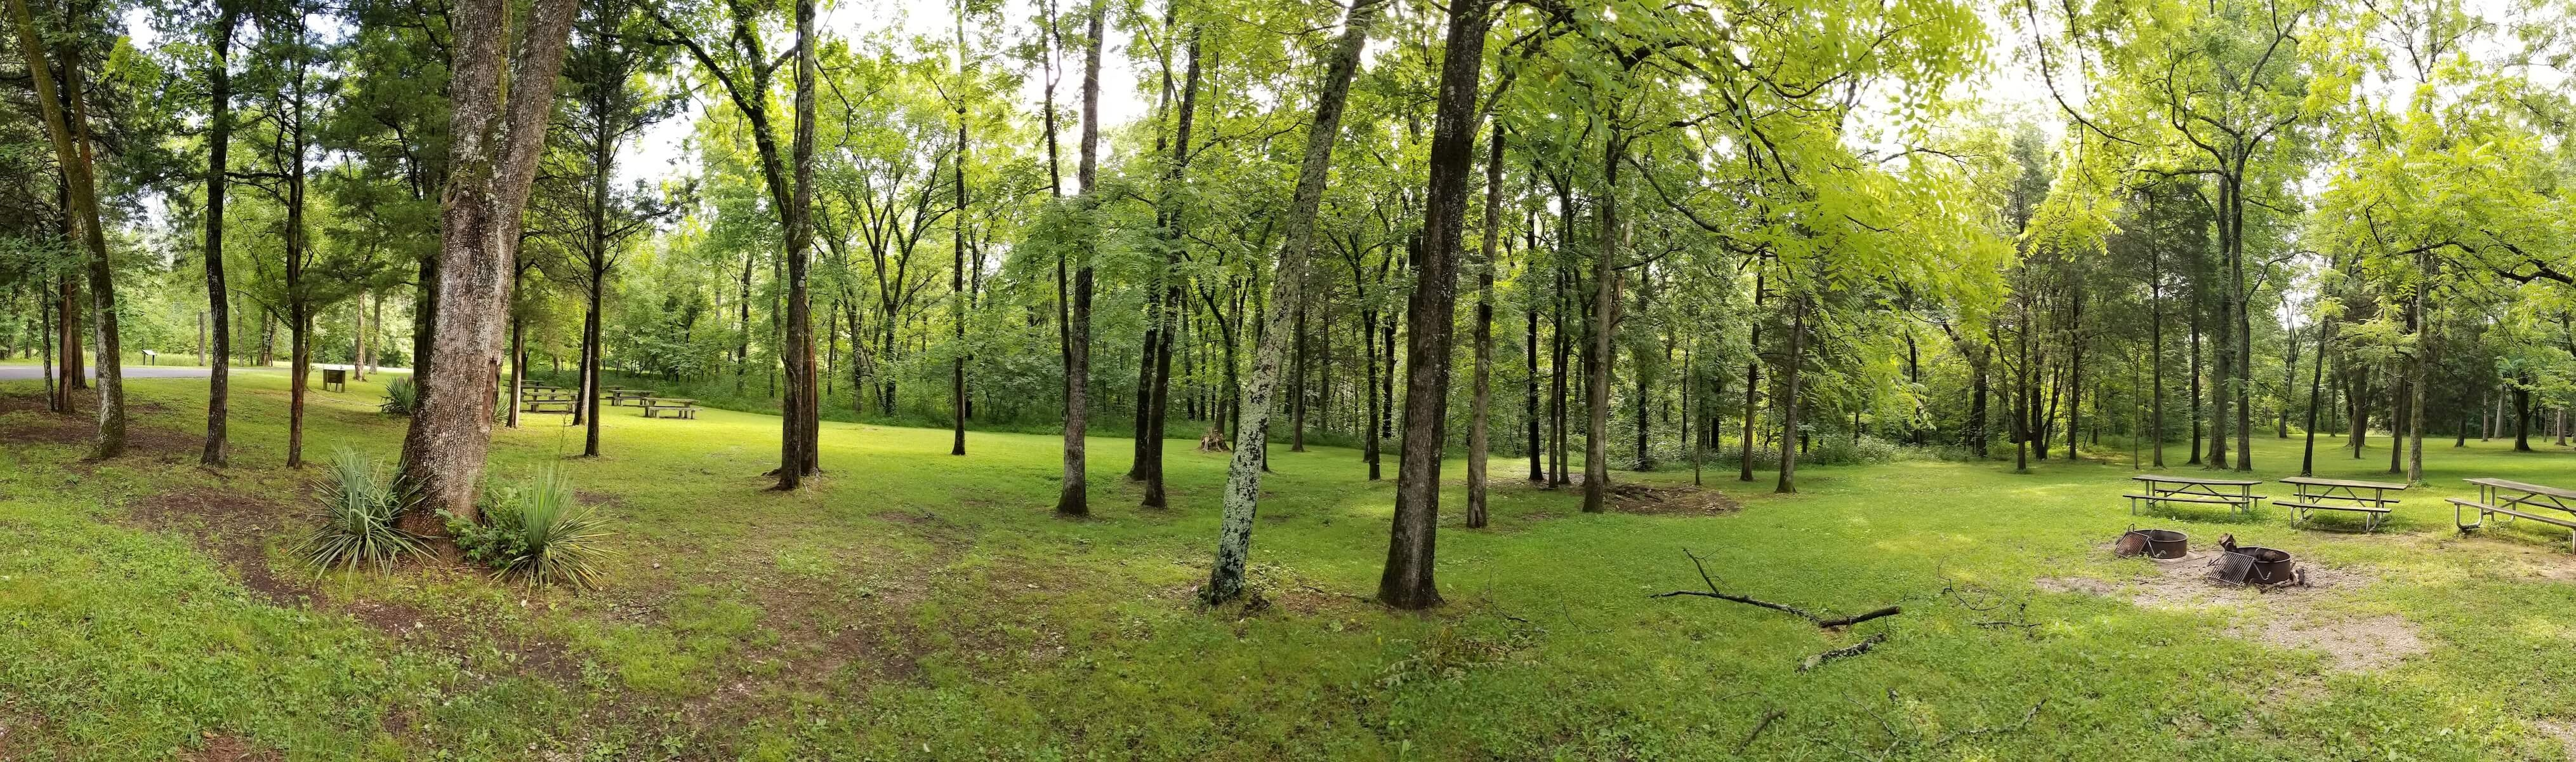 Maple Springs Campground Mammoth Cave